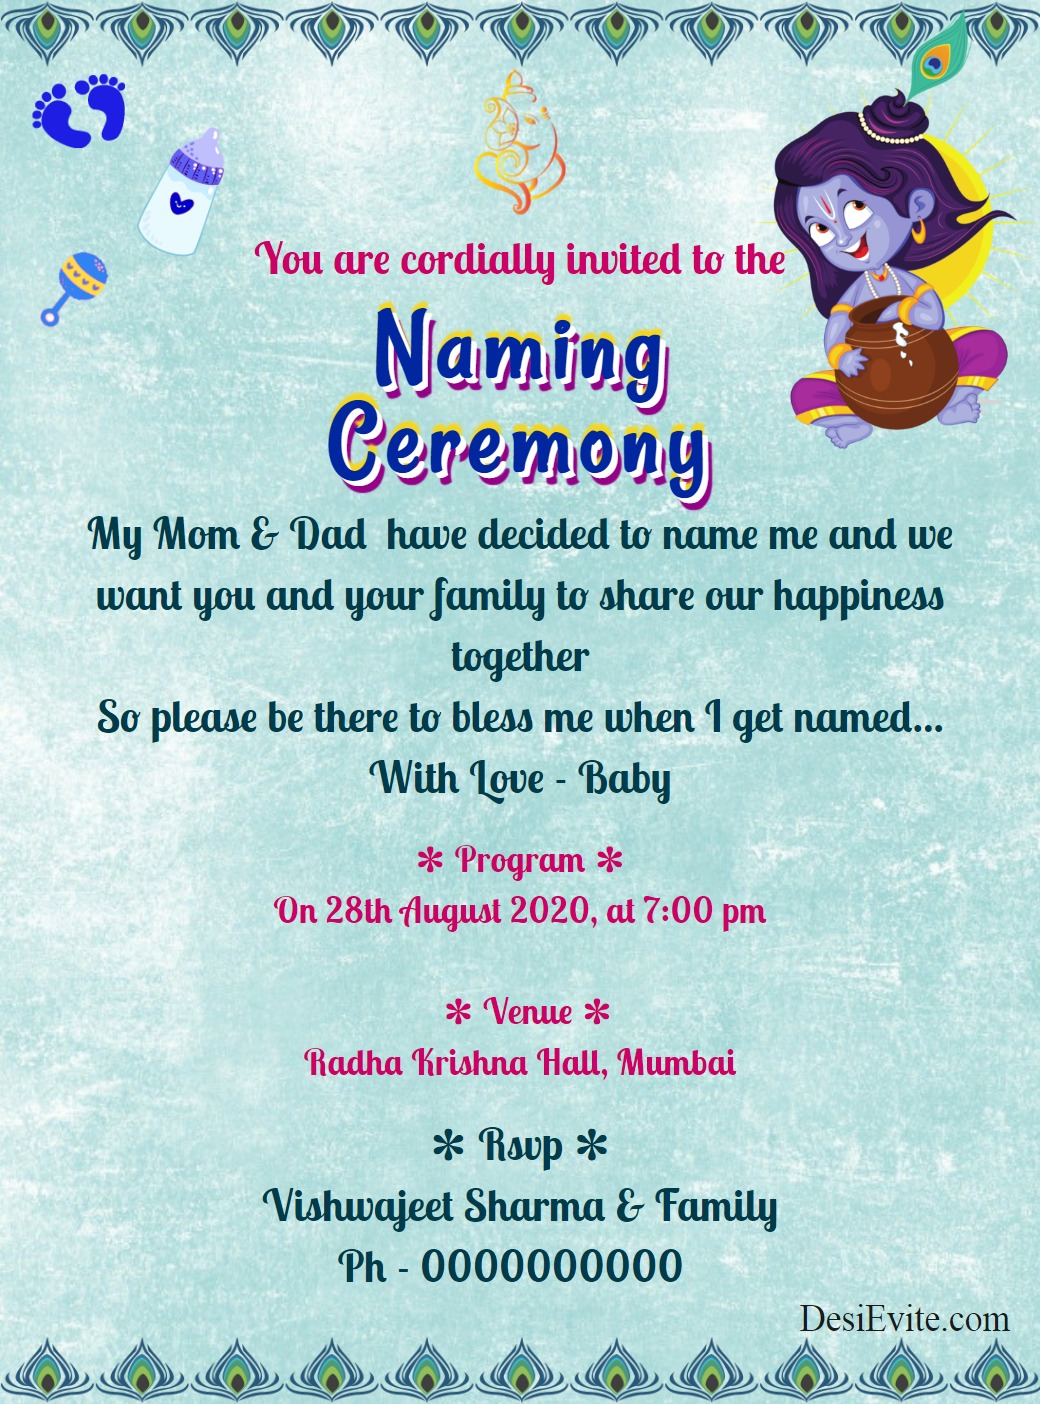 krishna theme naming ceremony card template 83